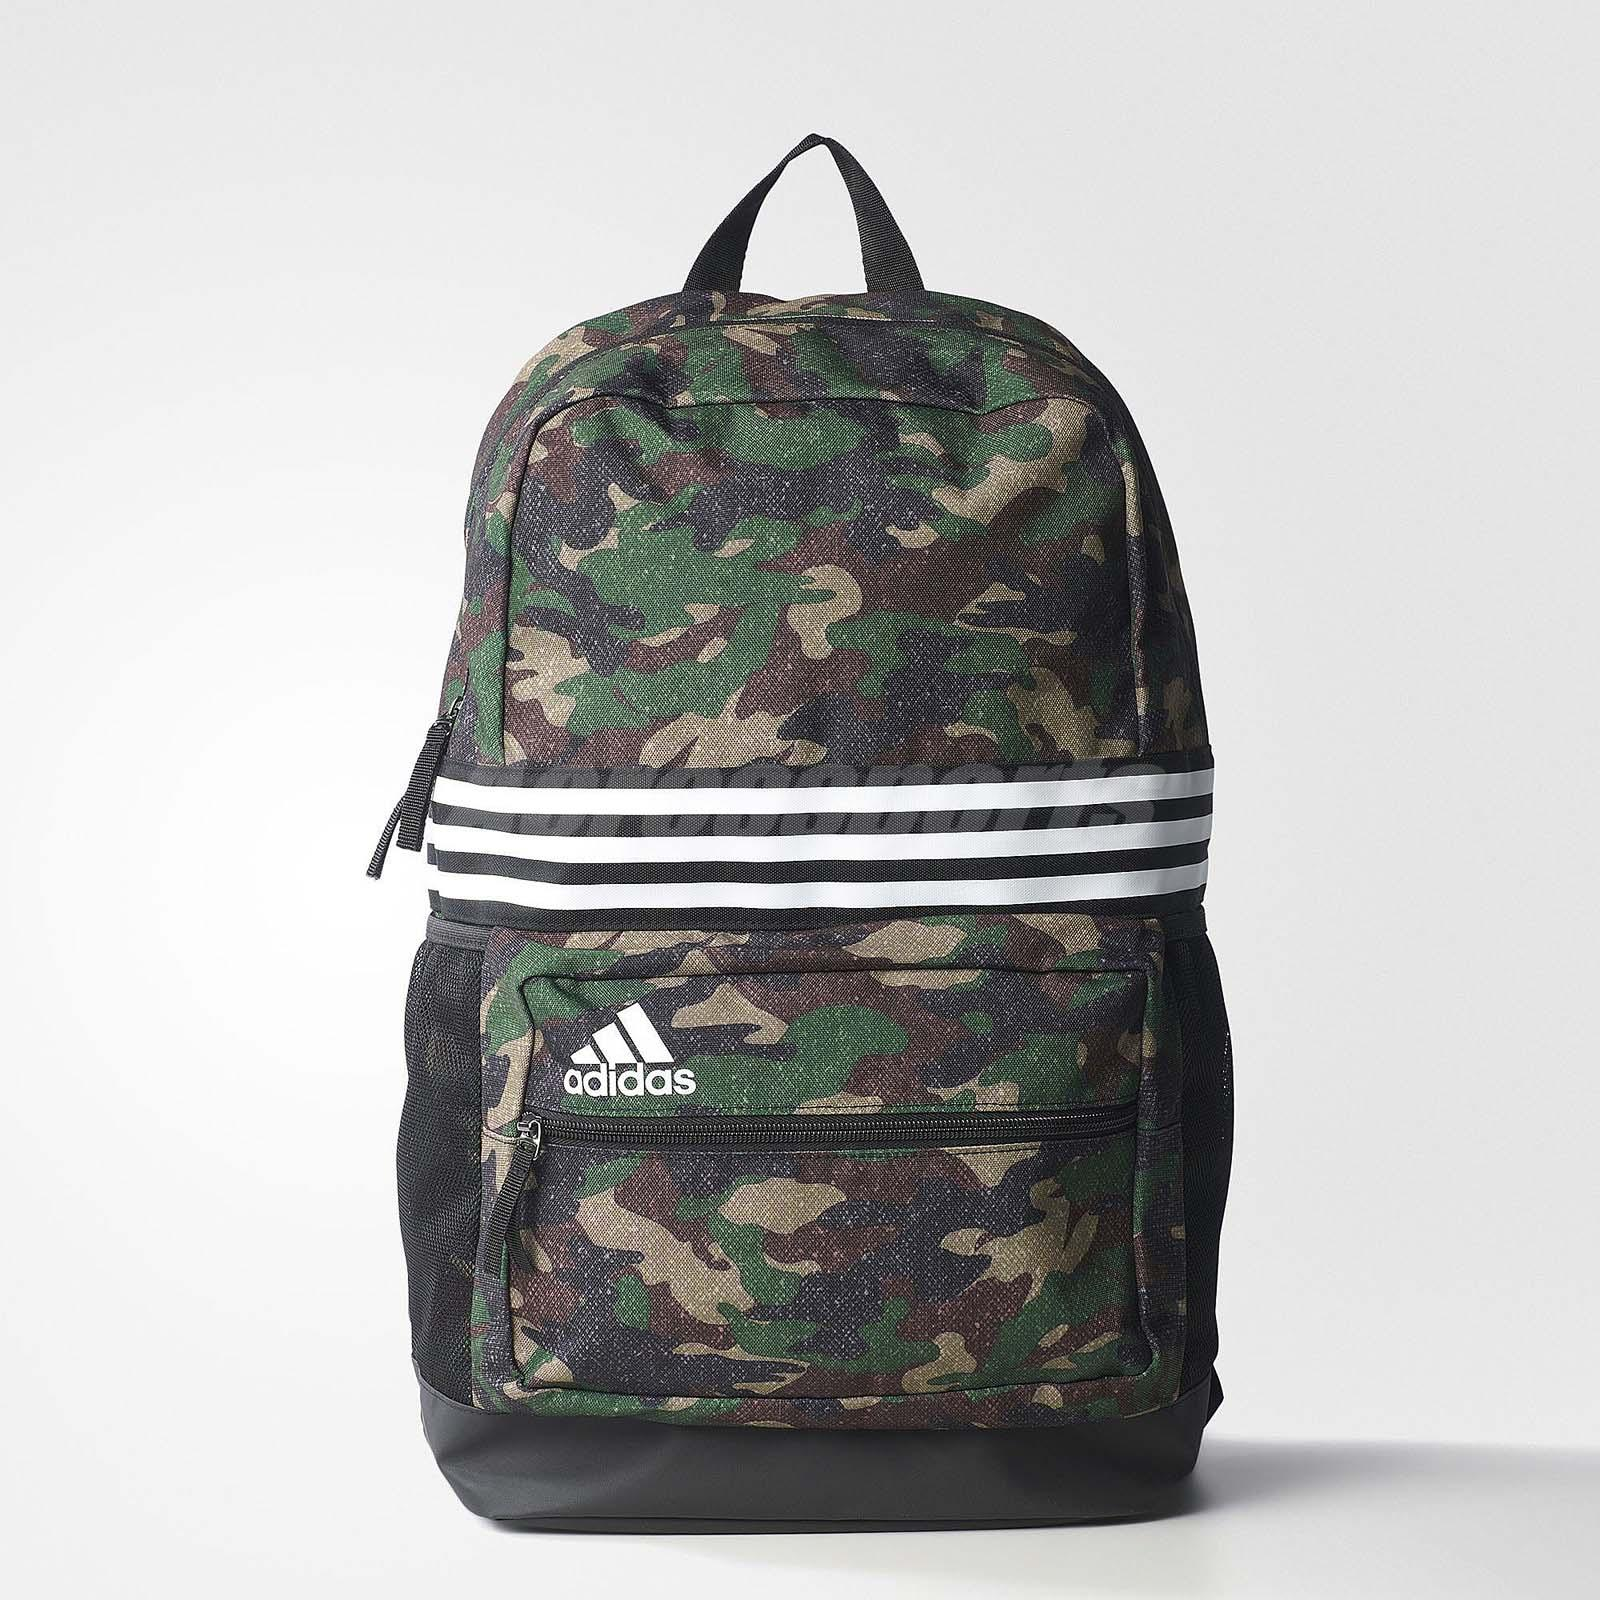 Buy new adidas bag   OFF73% Discounted a9152e1aa1ae2